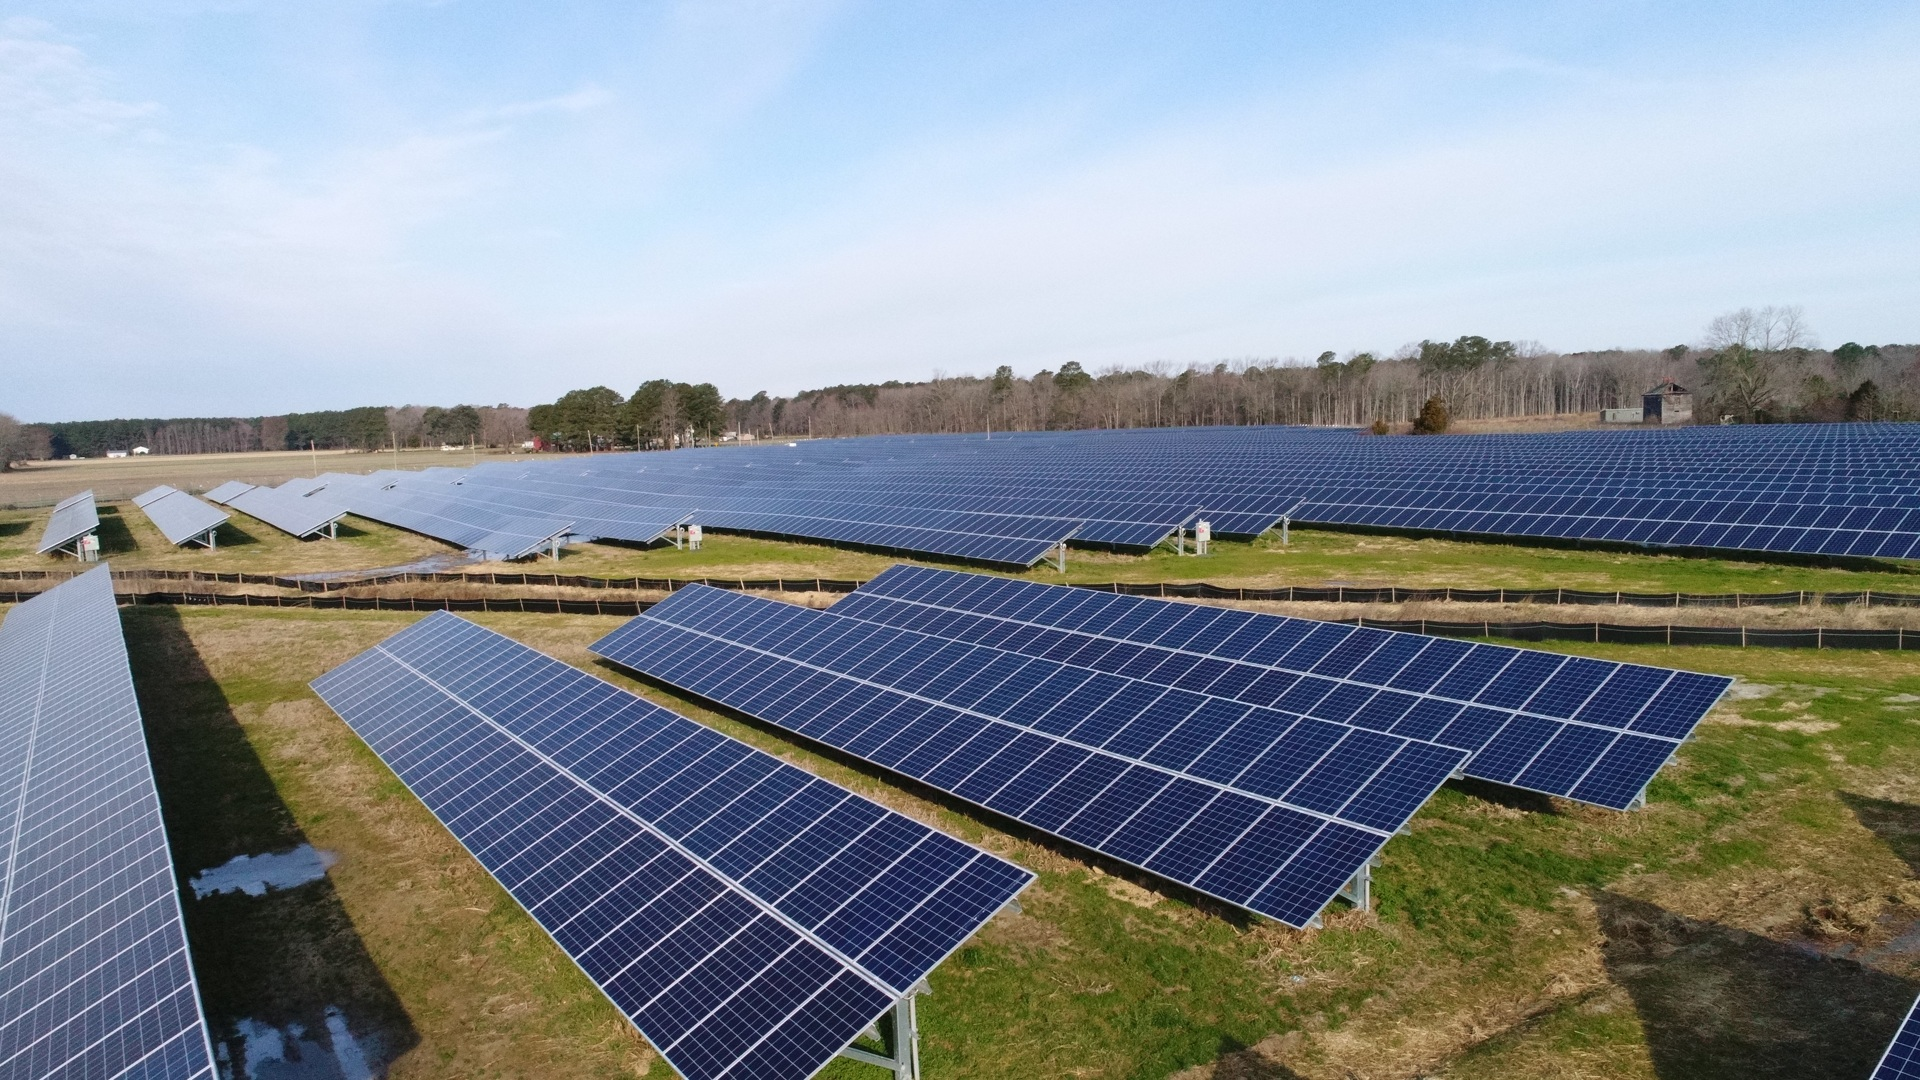 Great Bay, MD - 70MW PV Design